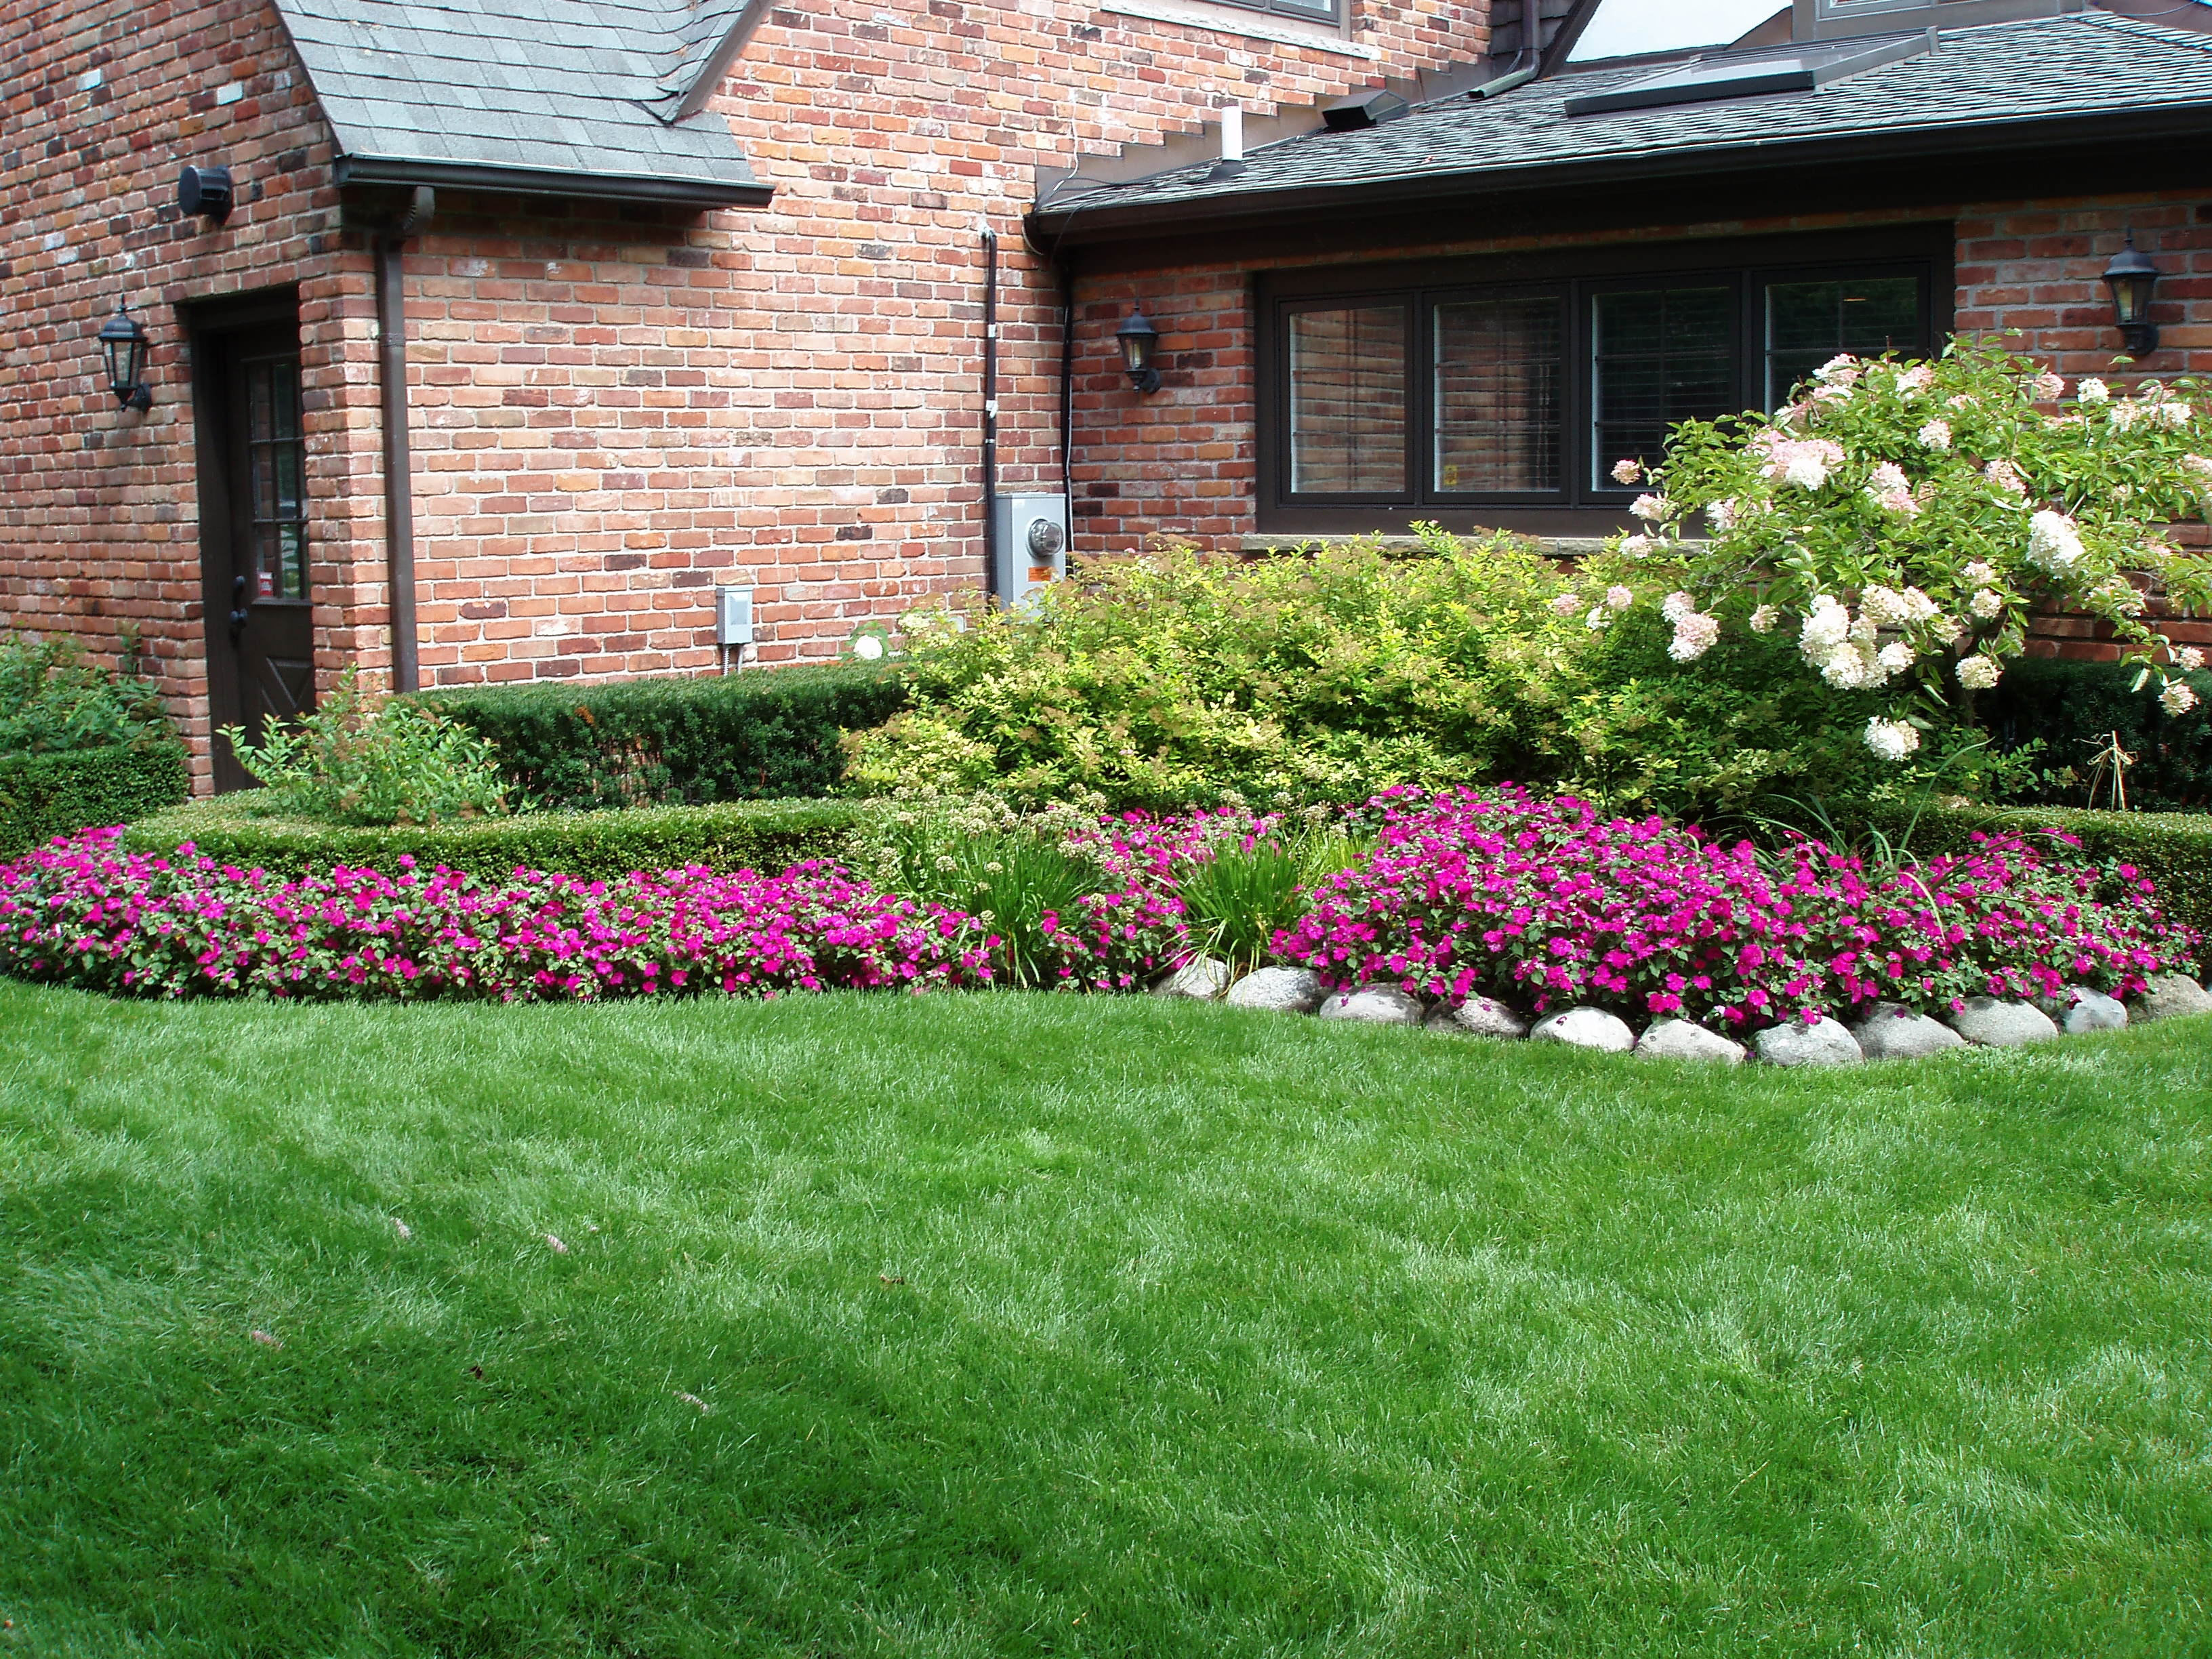 Perennials total lawn care inc full lawn maintenance for Patio landscaping